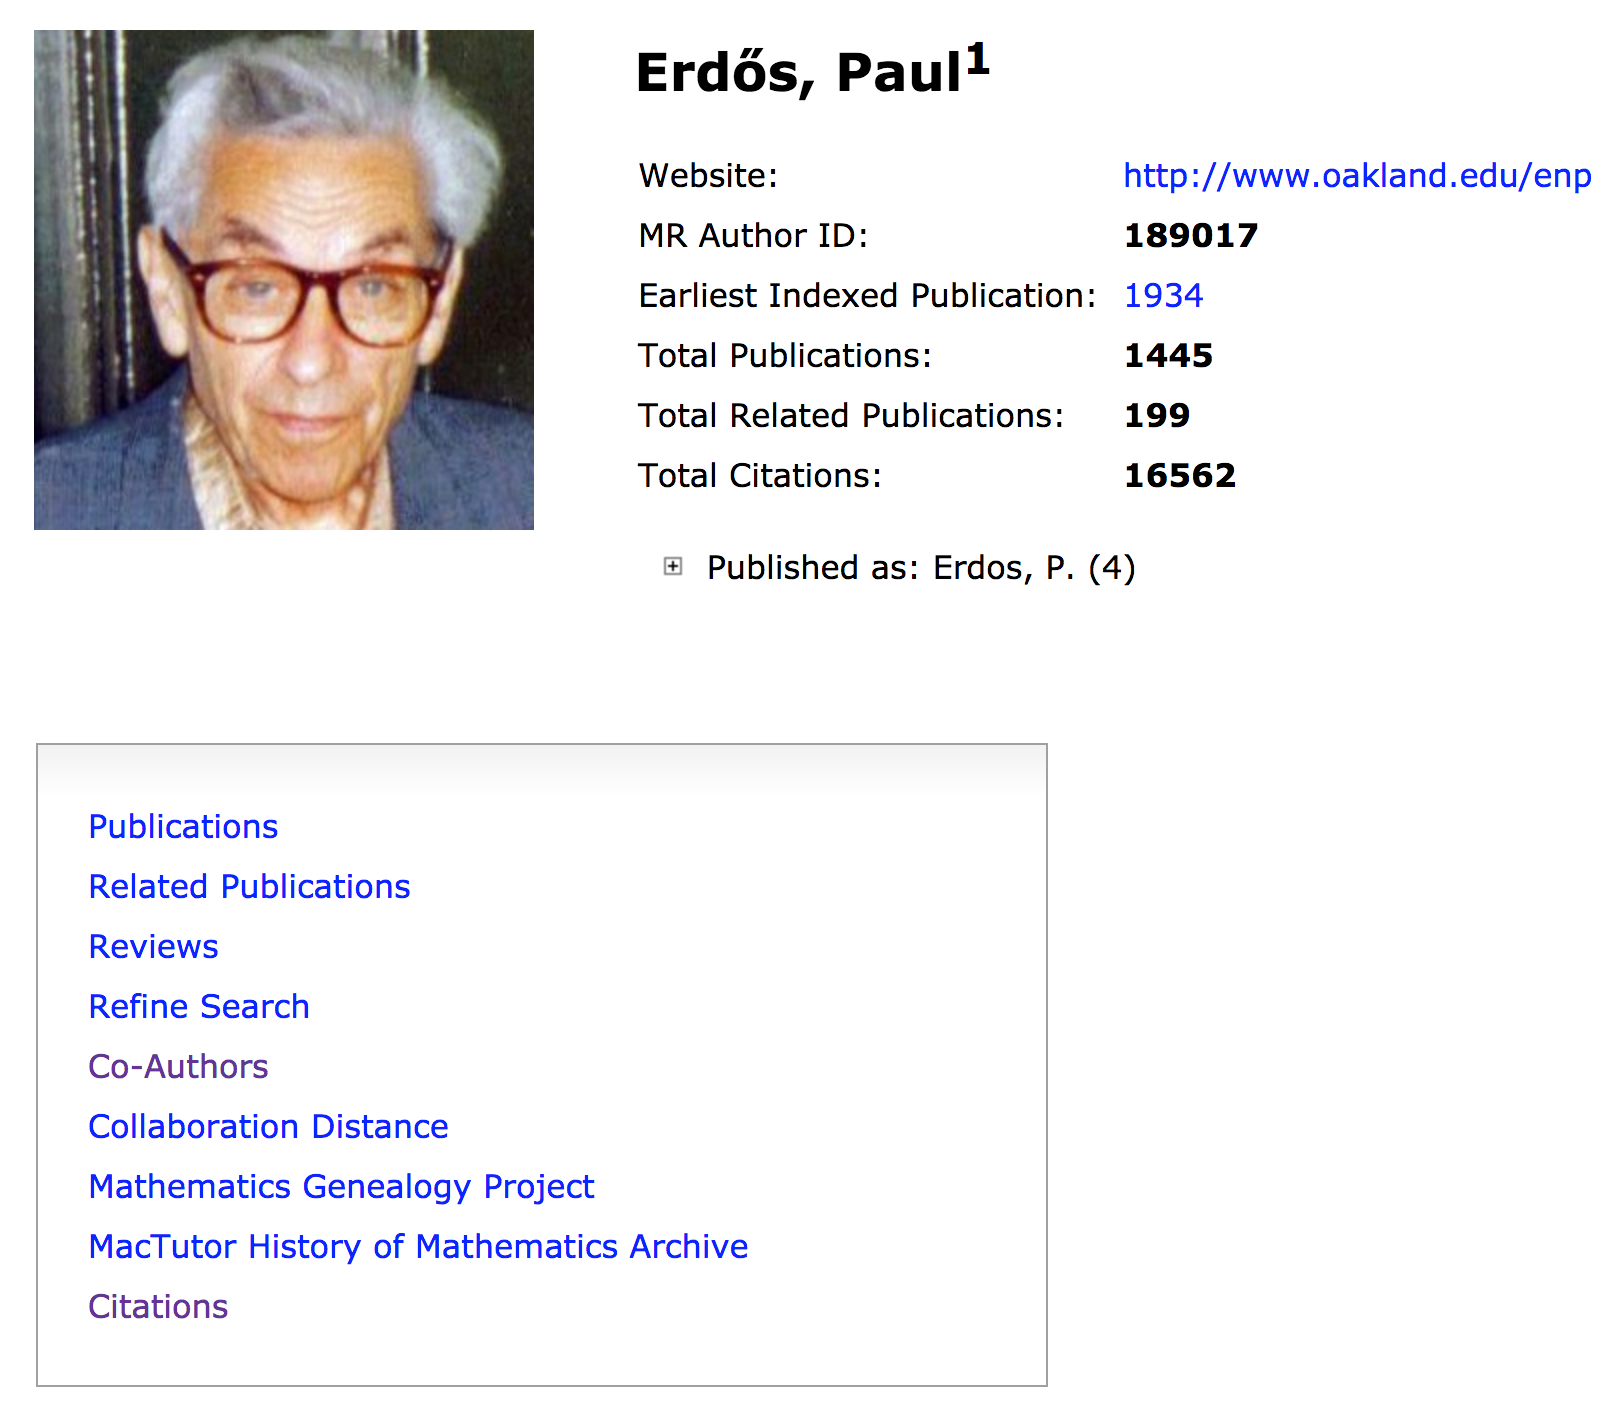 MathSciNet profile page for Paul Erdos. It main section has a photo and to the right of the photo reads Erdos, Paul, Website: http://www.oakland.edu/enp, MR Author ID: 189017, Earliest Indexed Publication: 1934, Total Publications: 1445, Total Related Publications: 199, Total Citations: 16562, and Published as: Erdos, P. (4). Under this is a box of links to publications, related publications, reviews, refine search, co-authors, collaboration distance, mathematics geneology project, mactutor history of mathematics archive, and citations.